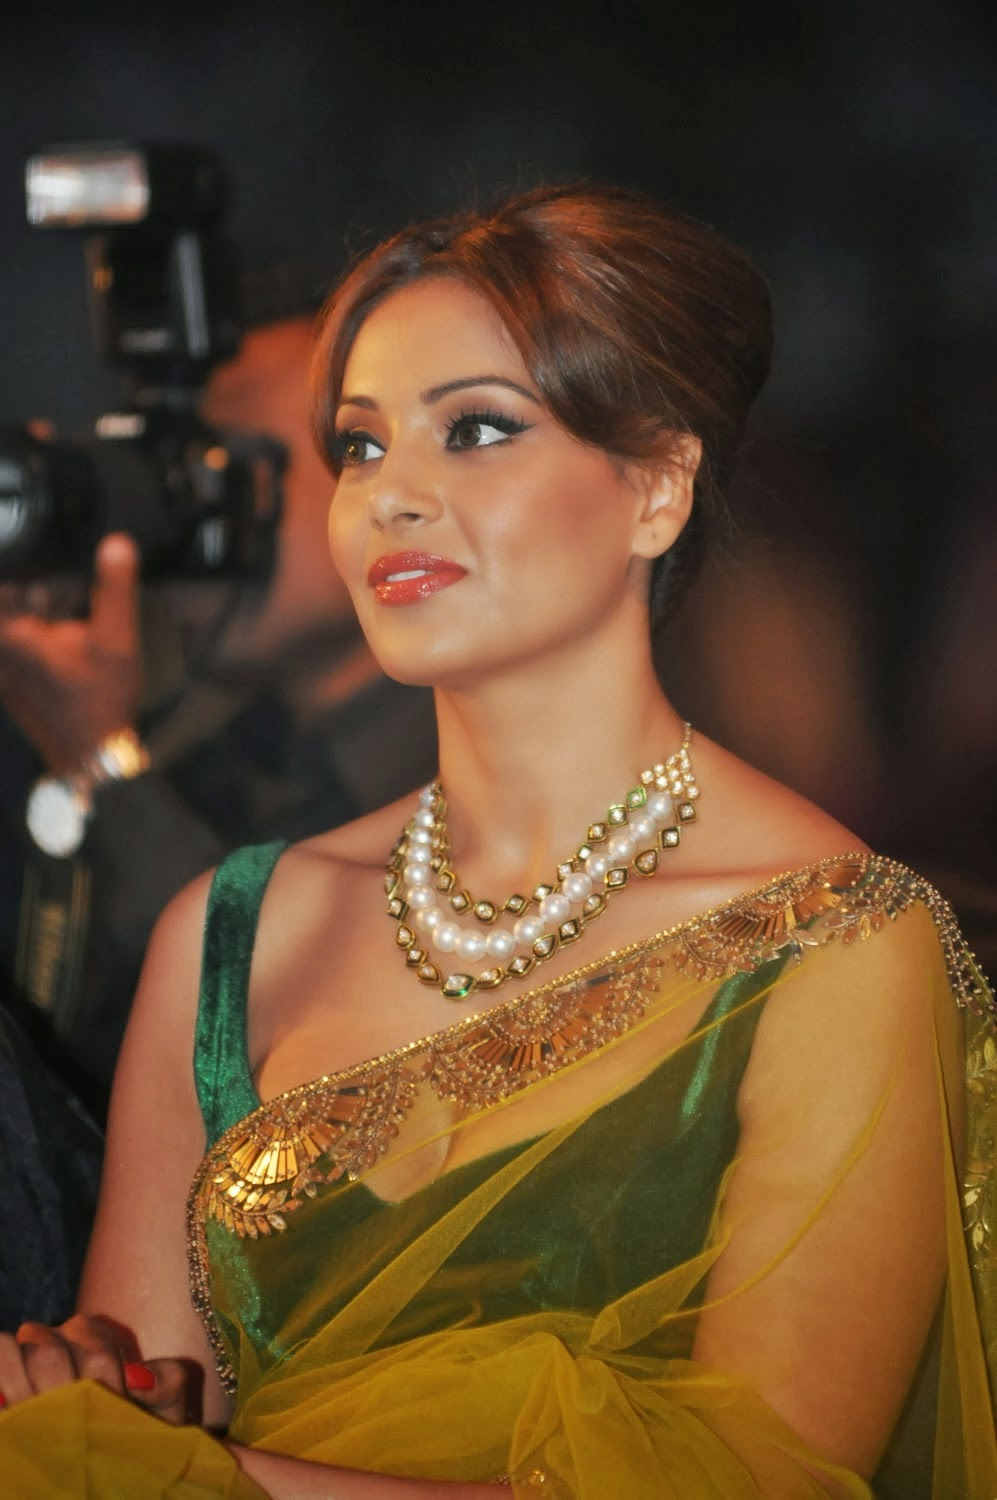 bipasha basu hot cleavage pics in saree